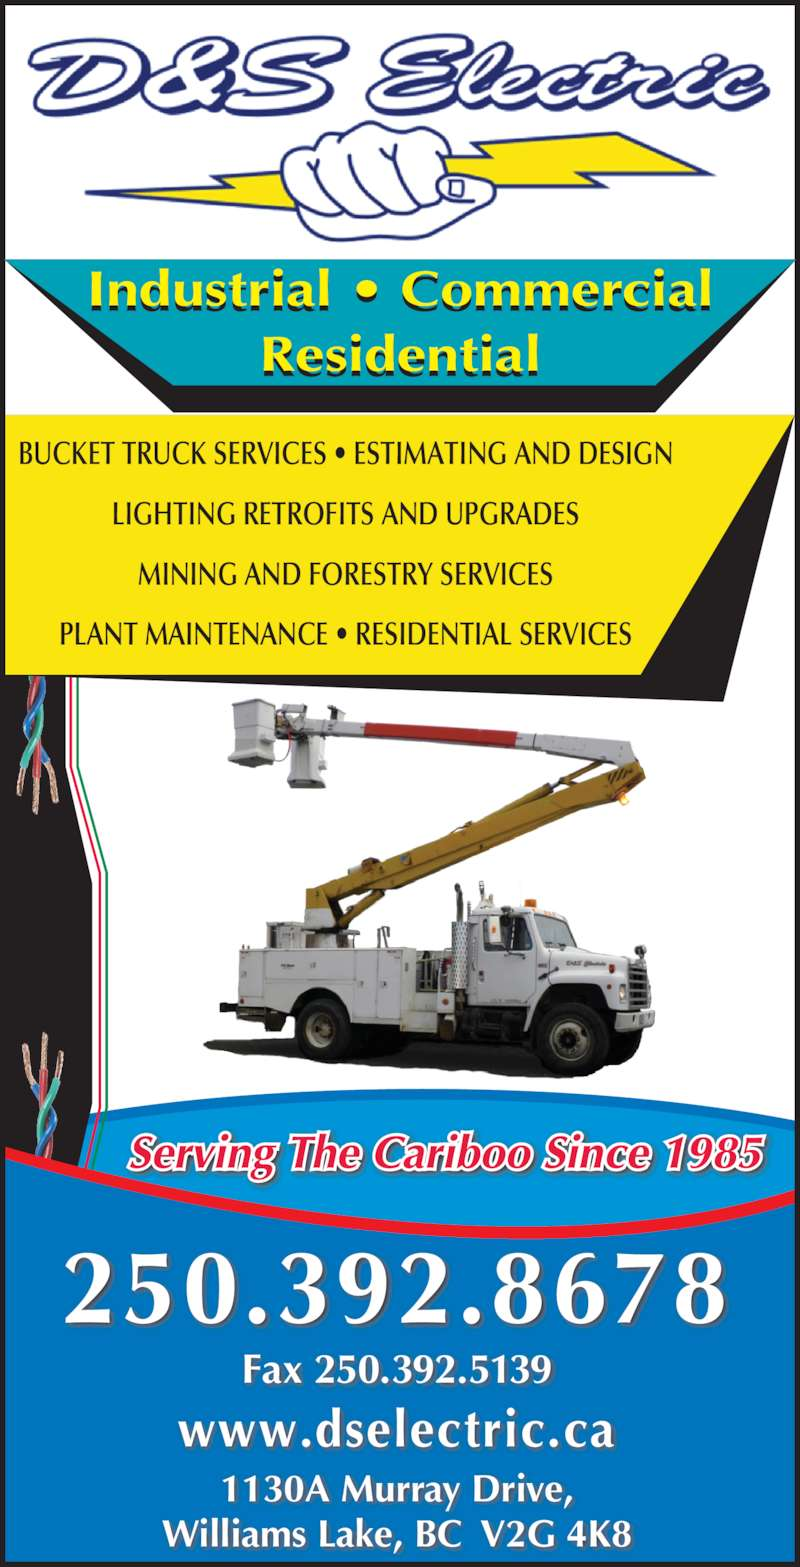 D & S Electric (250-392-1015) - Display Ad - Serving The Cariboo Since 1985 Fax 250.392.5139 1130A Murray Drive, Williams Lake, BC  V2G 4K8 BUCKET TRUCK SERVICES ? ESTIMATING AND DESIGN LIGHTING RETROFITS AND UPGRADES MINING AND FORESTRY SERVICES PLANT MAINTENANCE ? RESIDENTIAL SERVICES 250.392.8678 www.dselectric.ca Industrial ? Commercial Residential